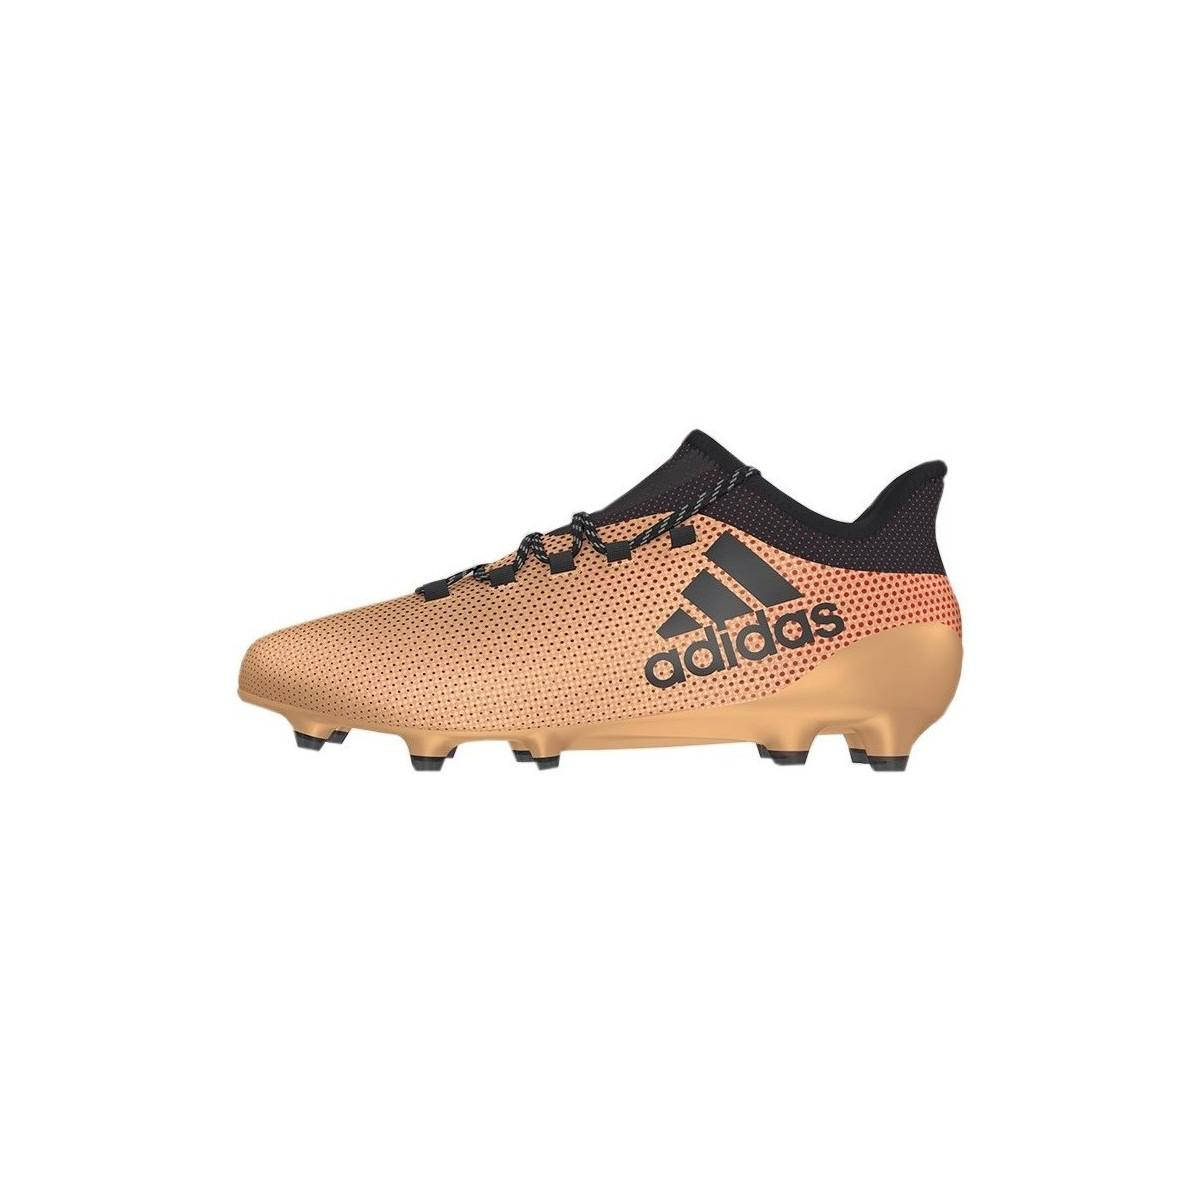 718829bf314cf Adidas X 171 Fg Men s Football Boots In Black in Black for Men - Lyst